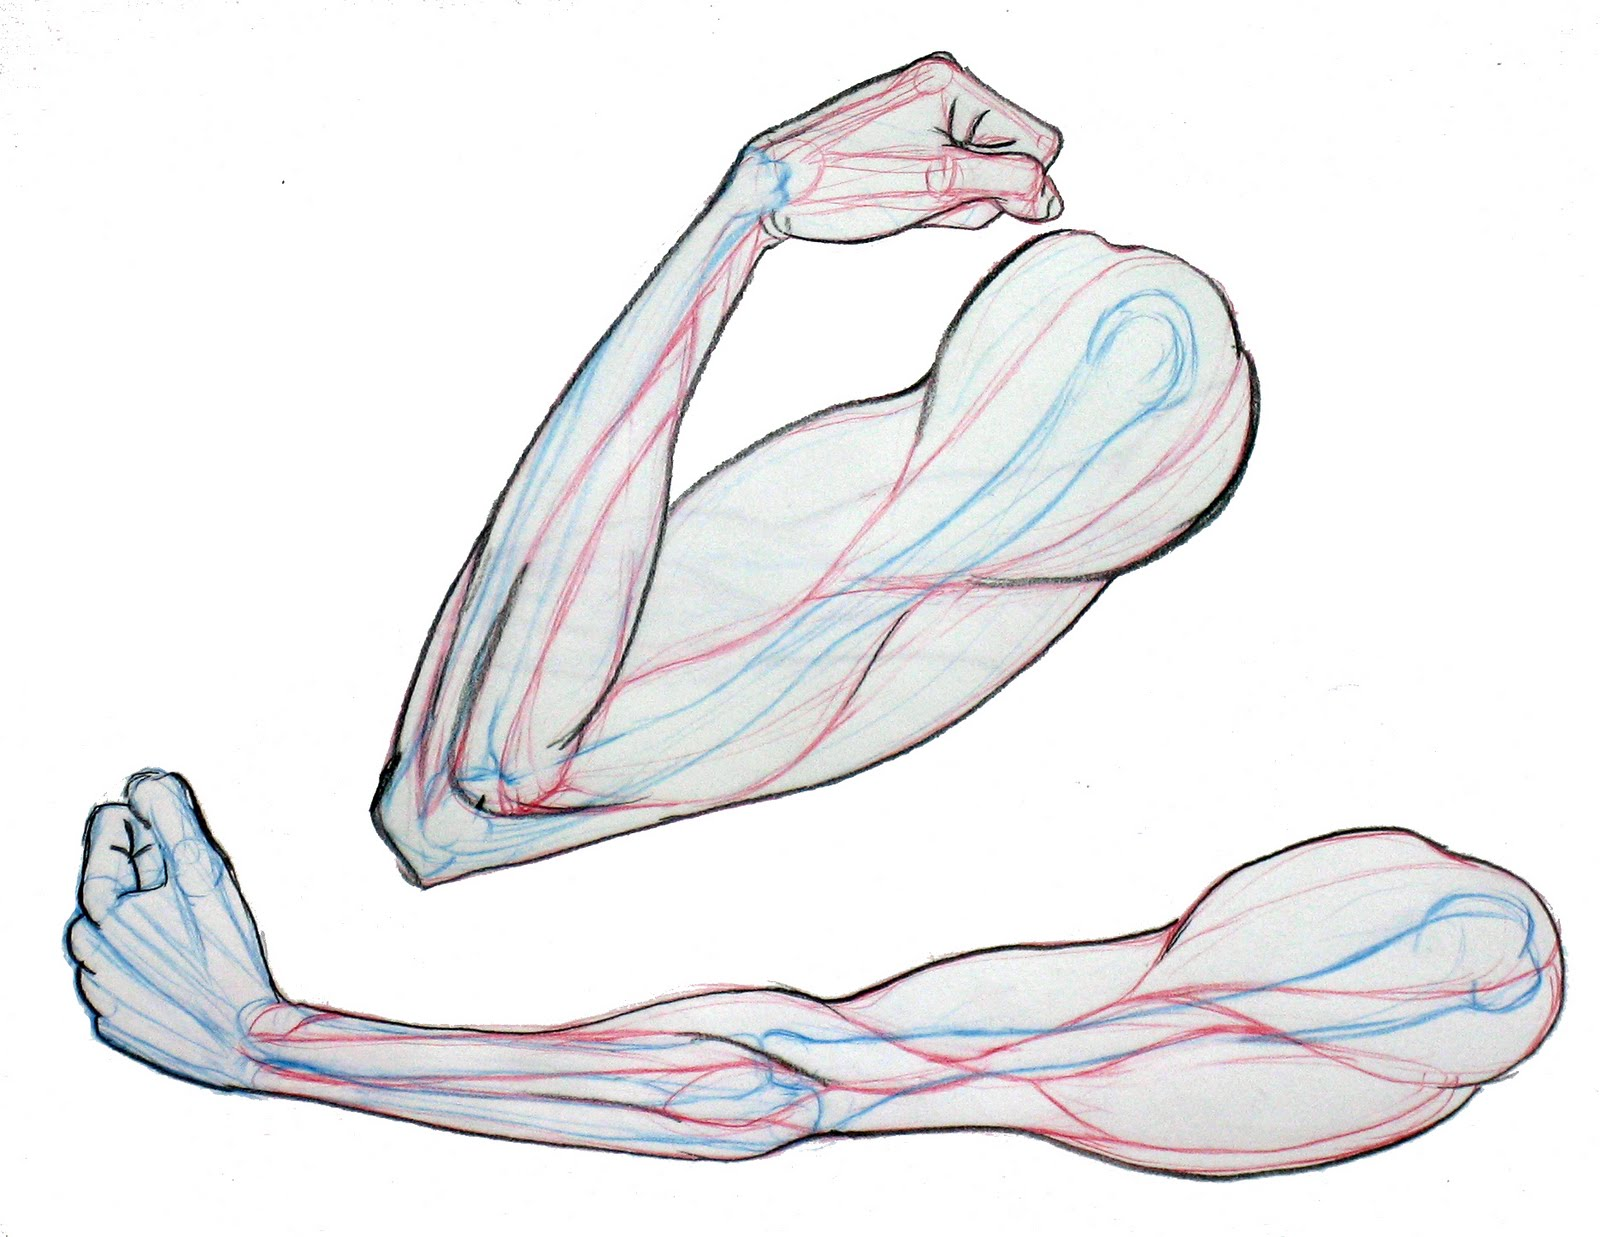 Dog Drawings - As with the  Arm Muscles Drawing